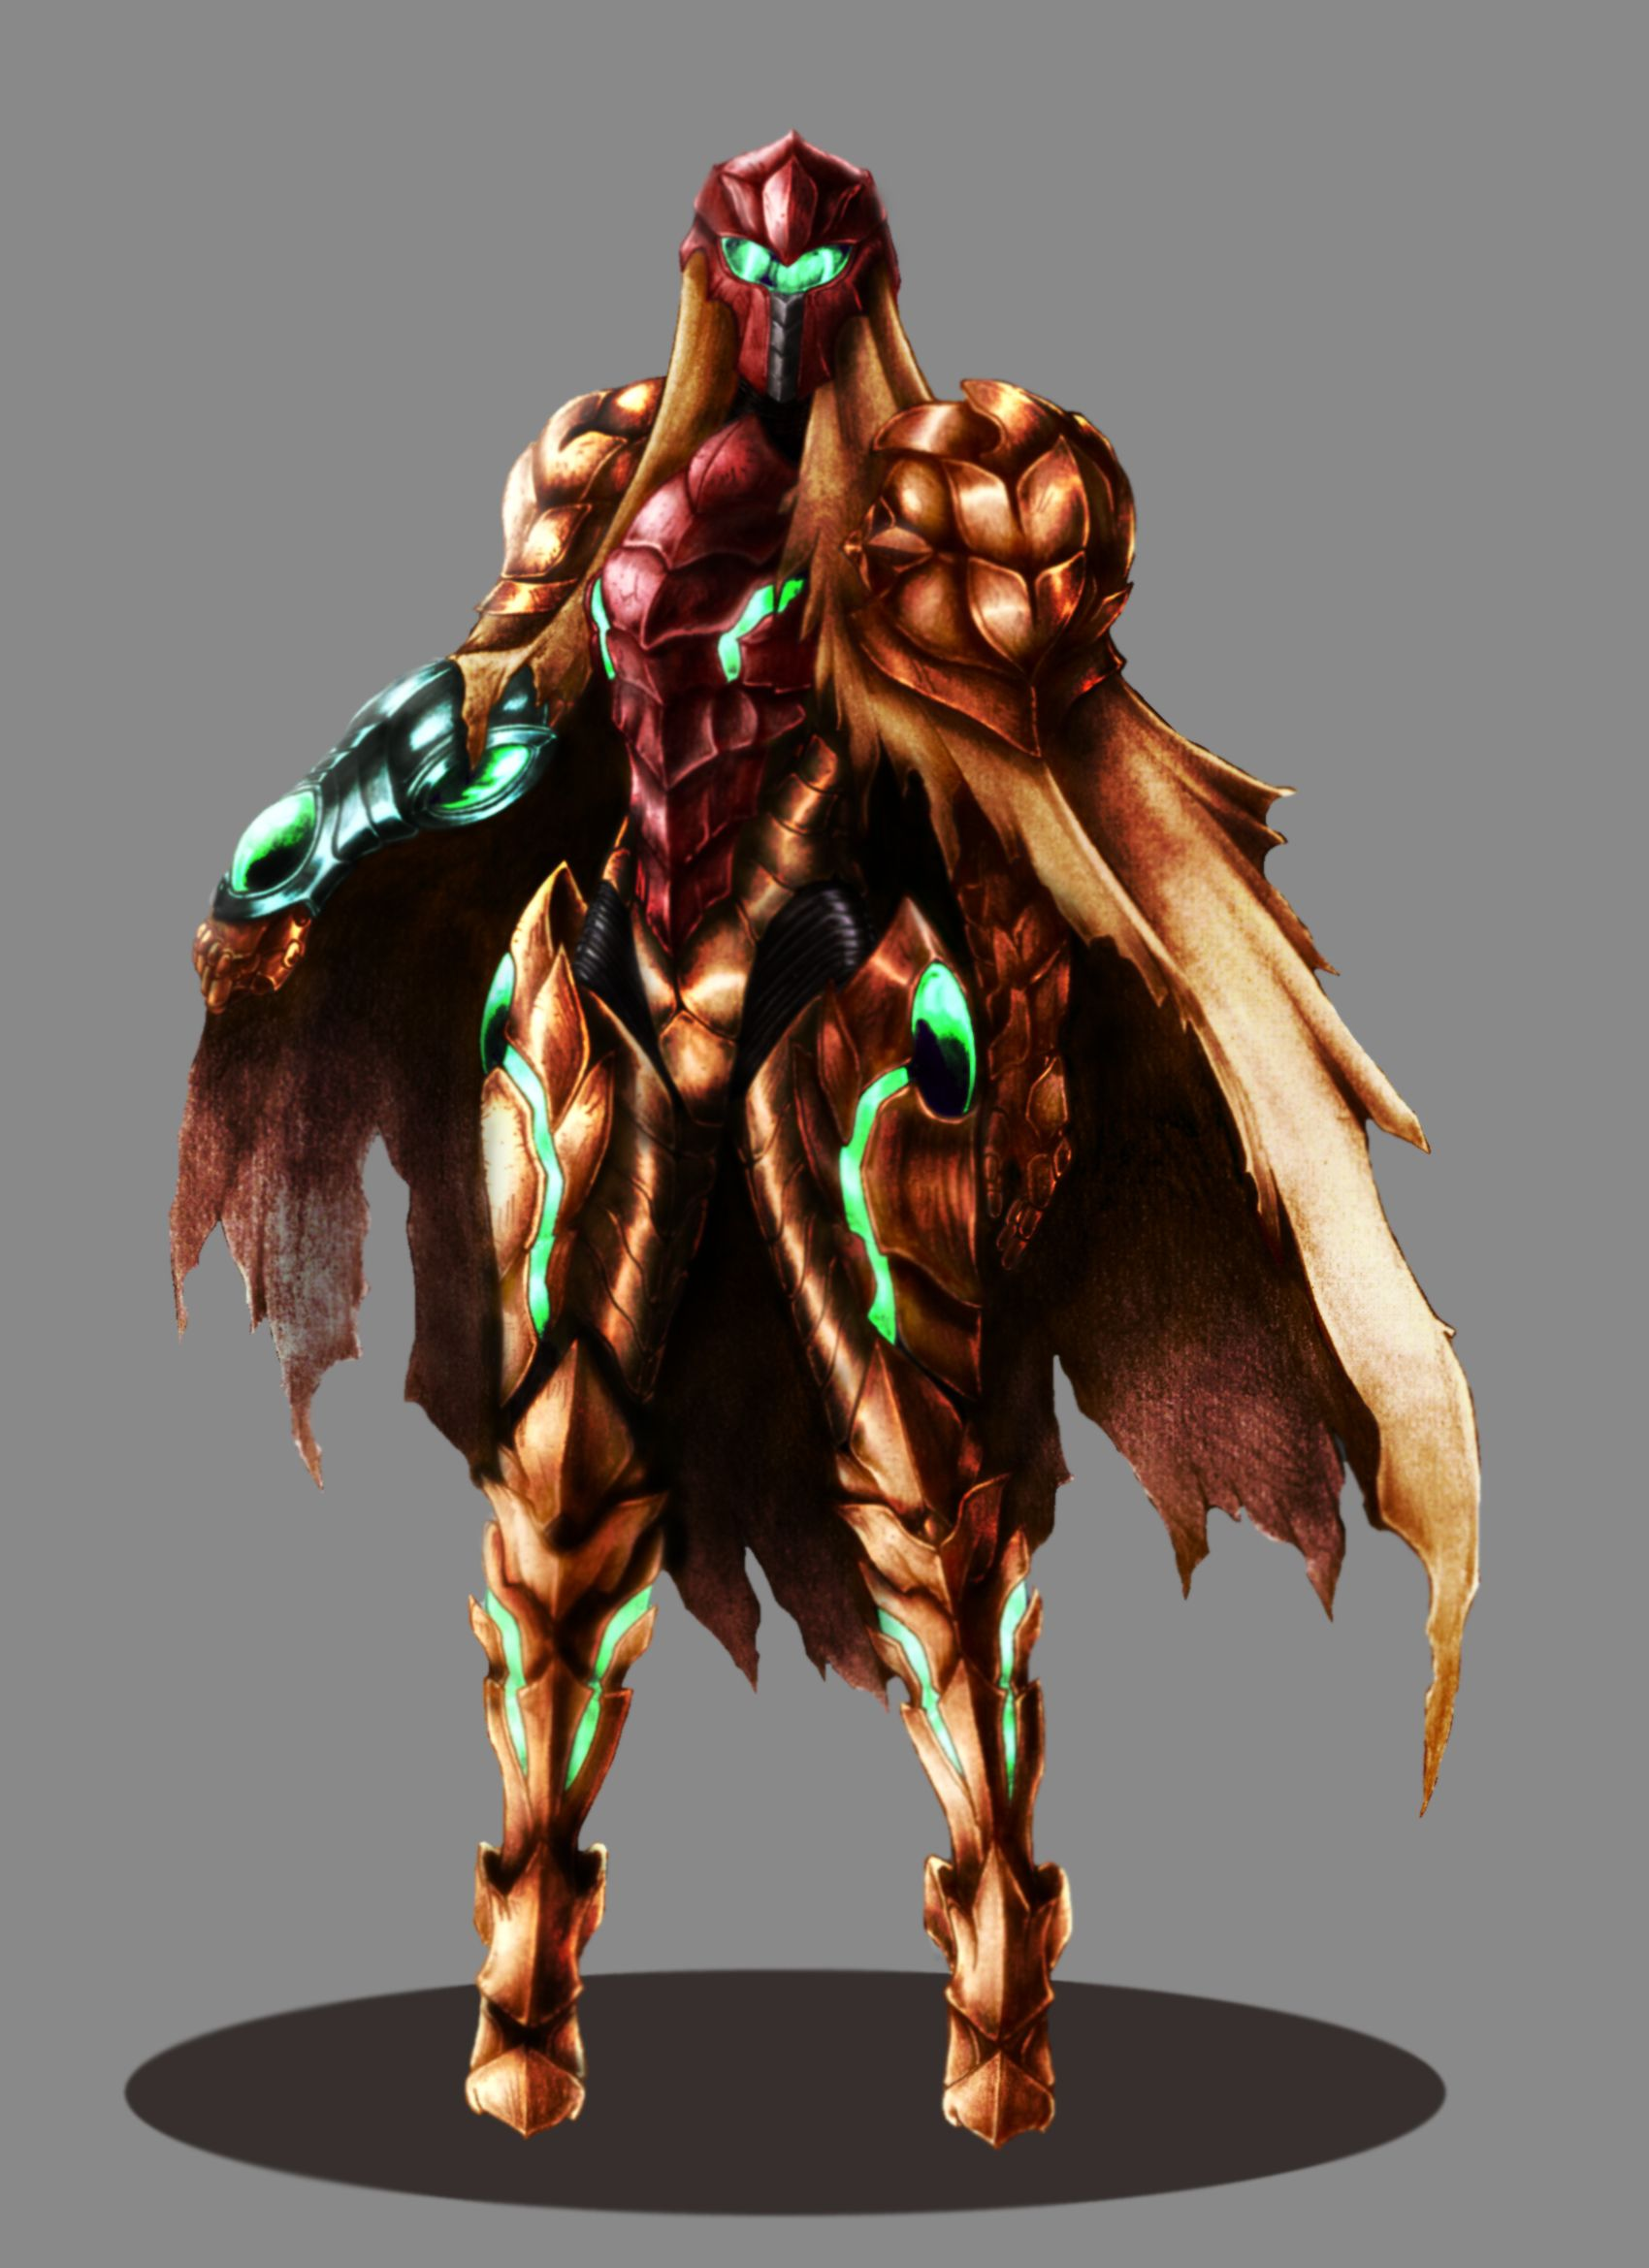 d u0026d like samus aran concept  more like a rogue class  i u0026 39 ve